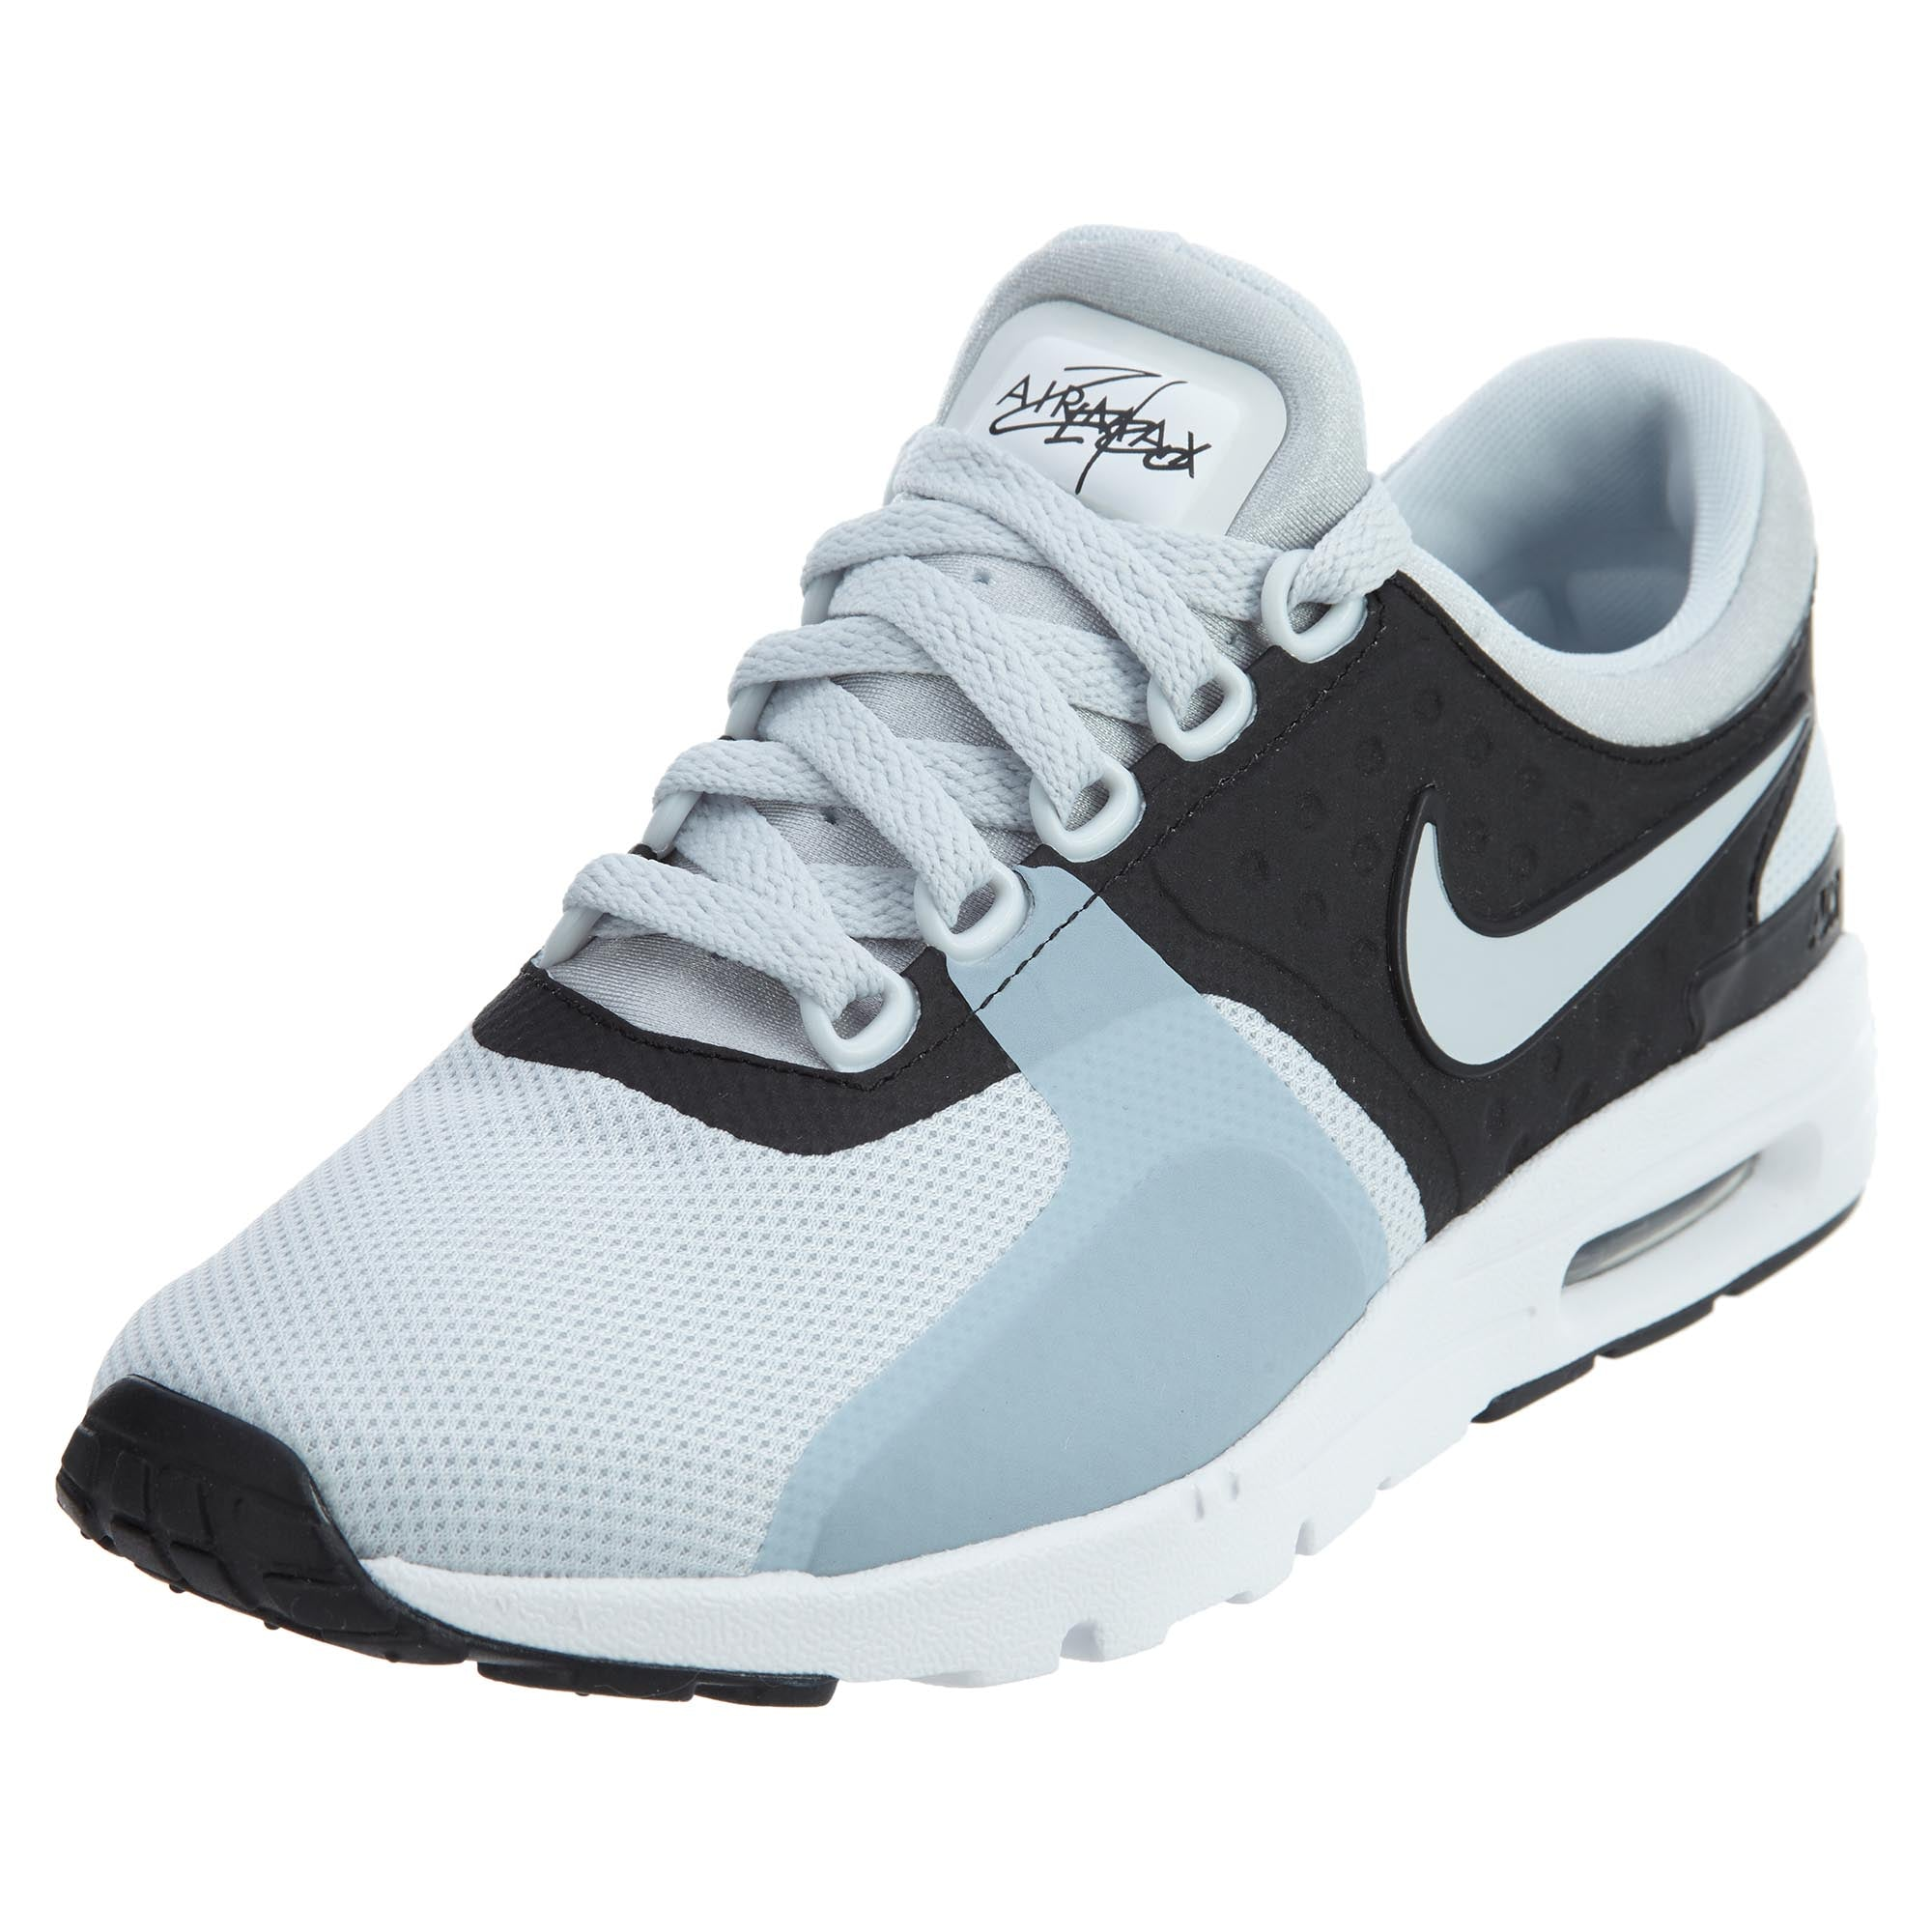 679f384d9 Nike Air Max Zero Womens Style   857661 – Sneaker Experts